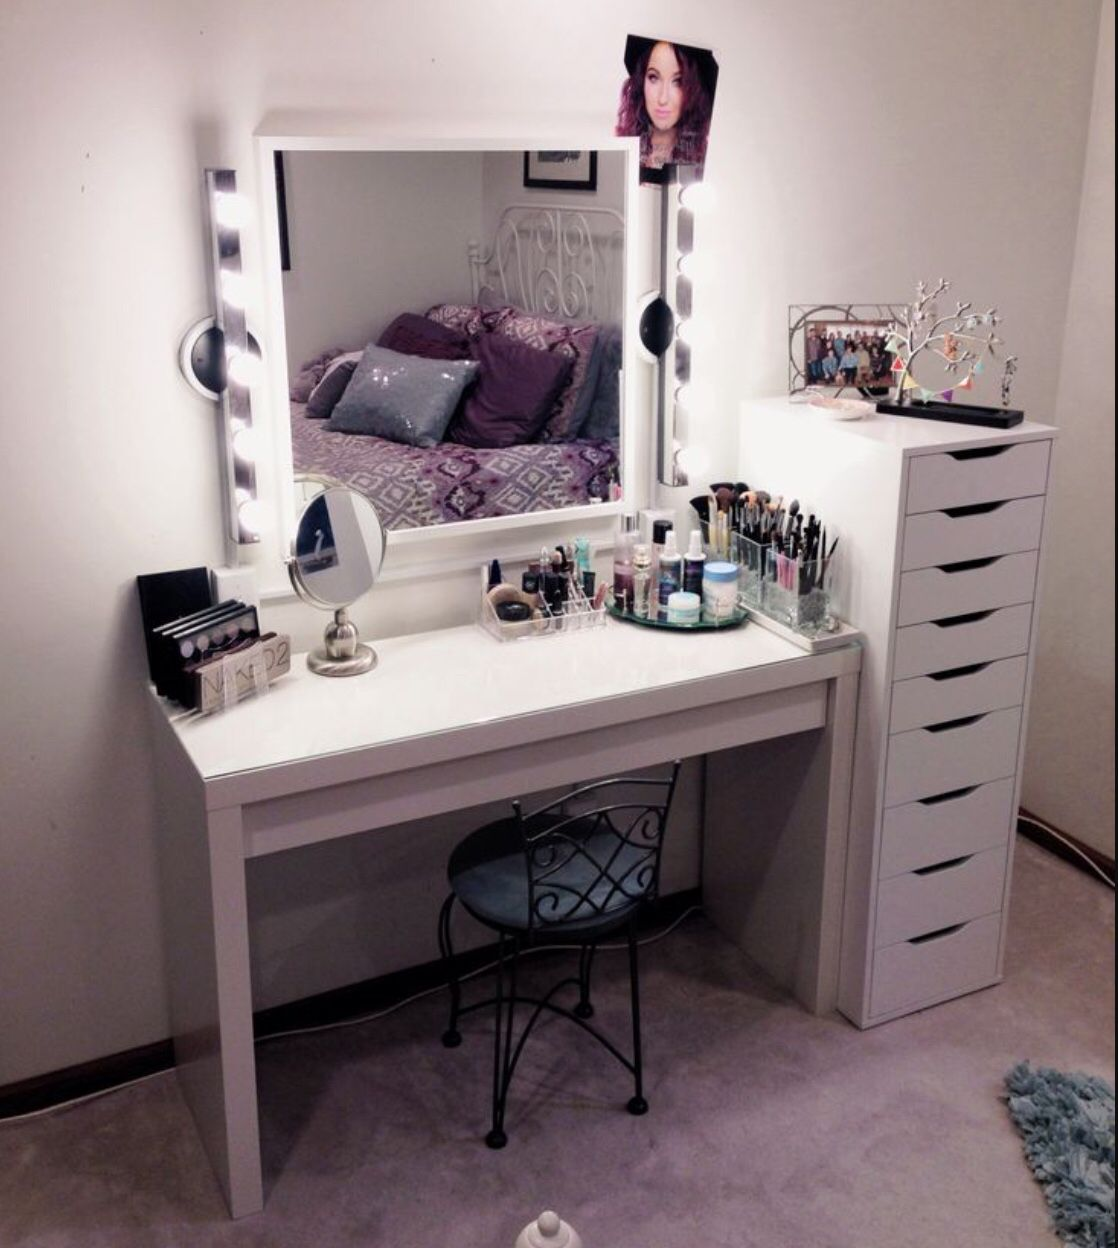 ikea is calling my name makeup room pinterest. Black Bedroom Furniture Sets. Home Design Ideas